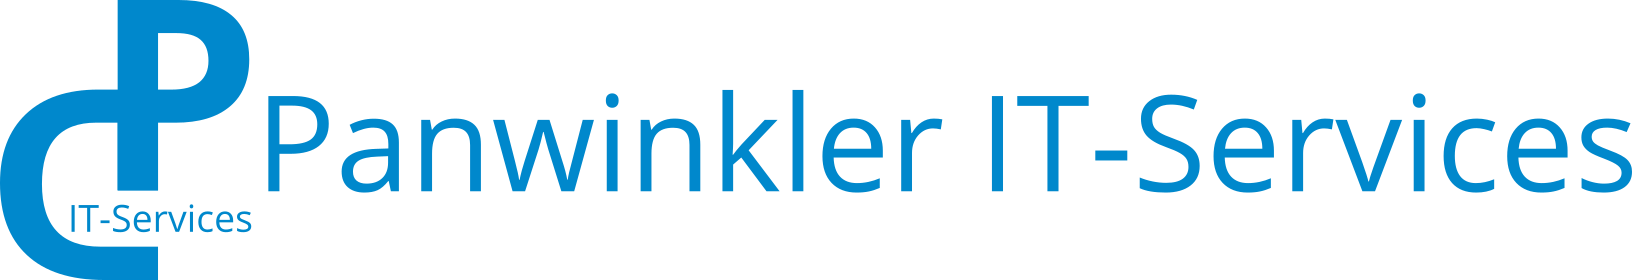 Panwinkler IT-Services